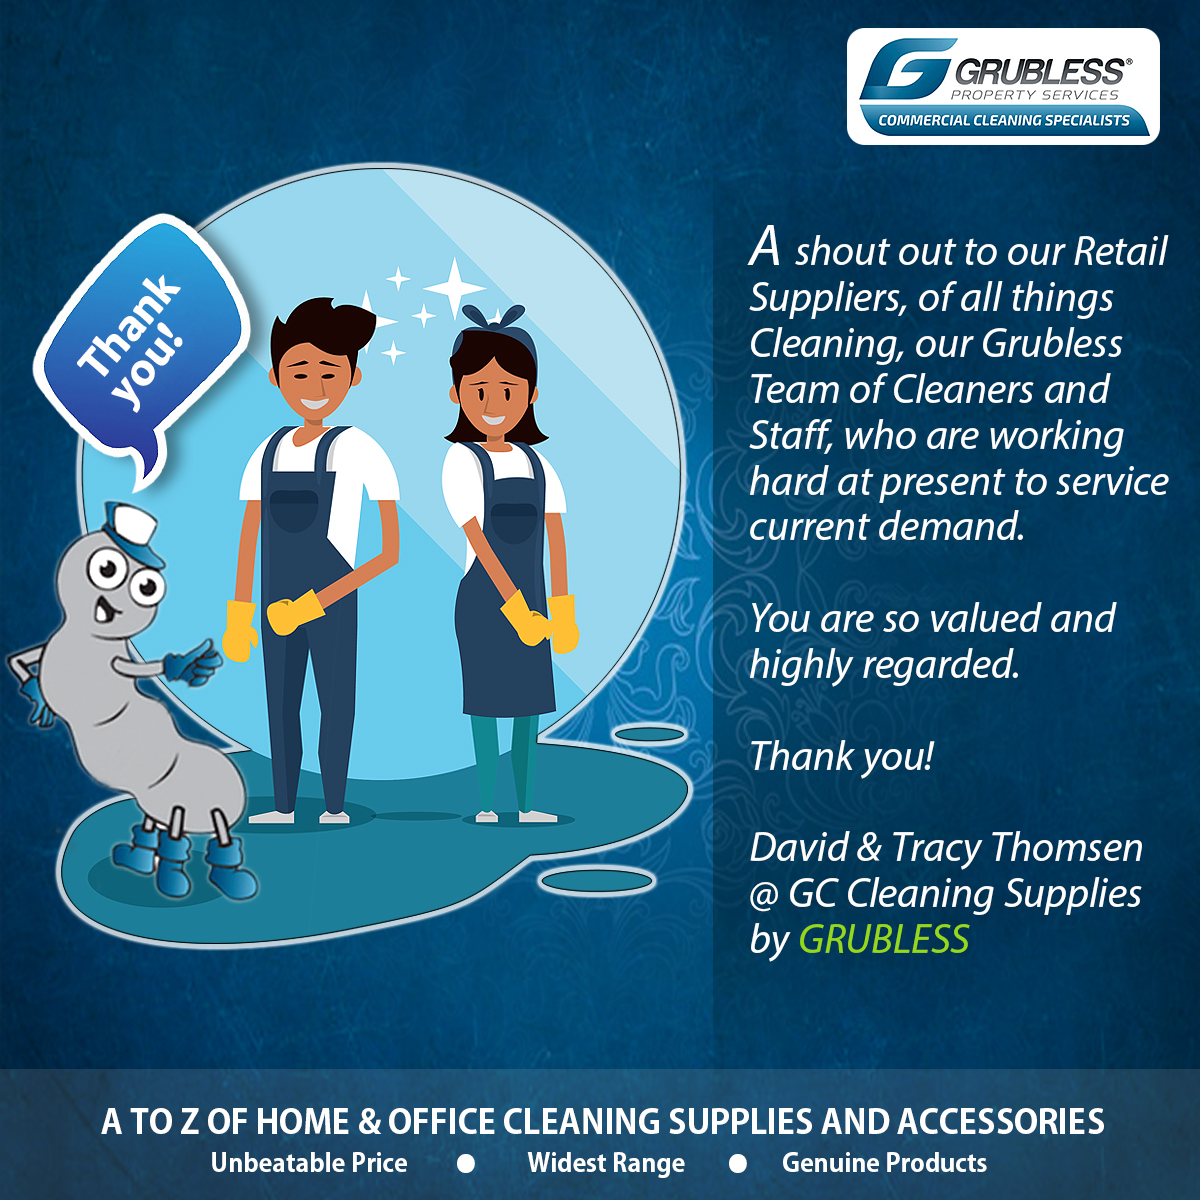 Thankful & Grateful to each one of you!  #cleaning #cleaningsupplies #commercialcleaning #Grublesspropertyservices #gccleaningsupplies #cleaningproducts pic.twitter.com/M5C4Q7J23X